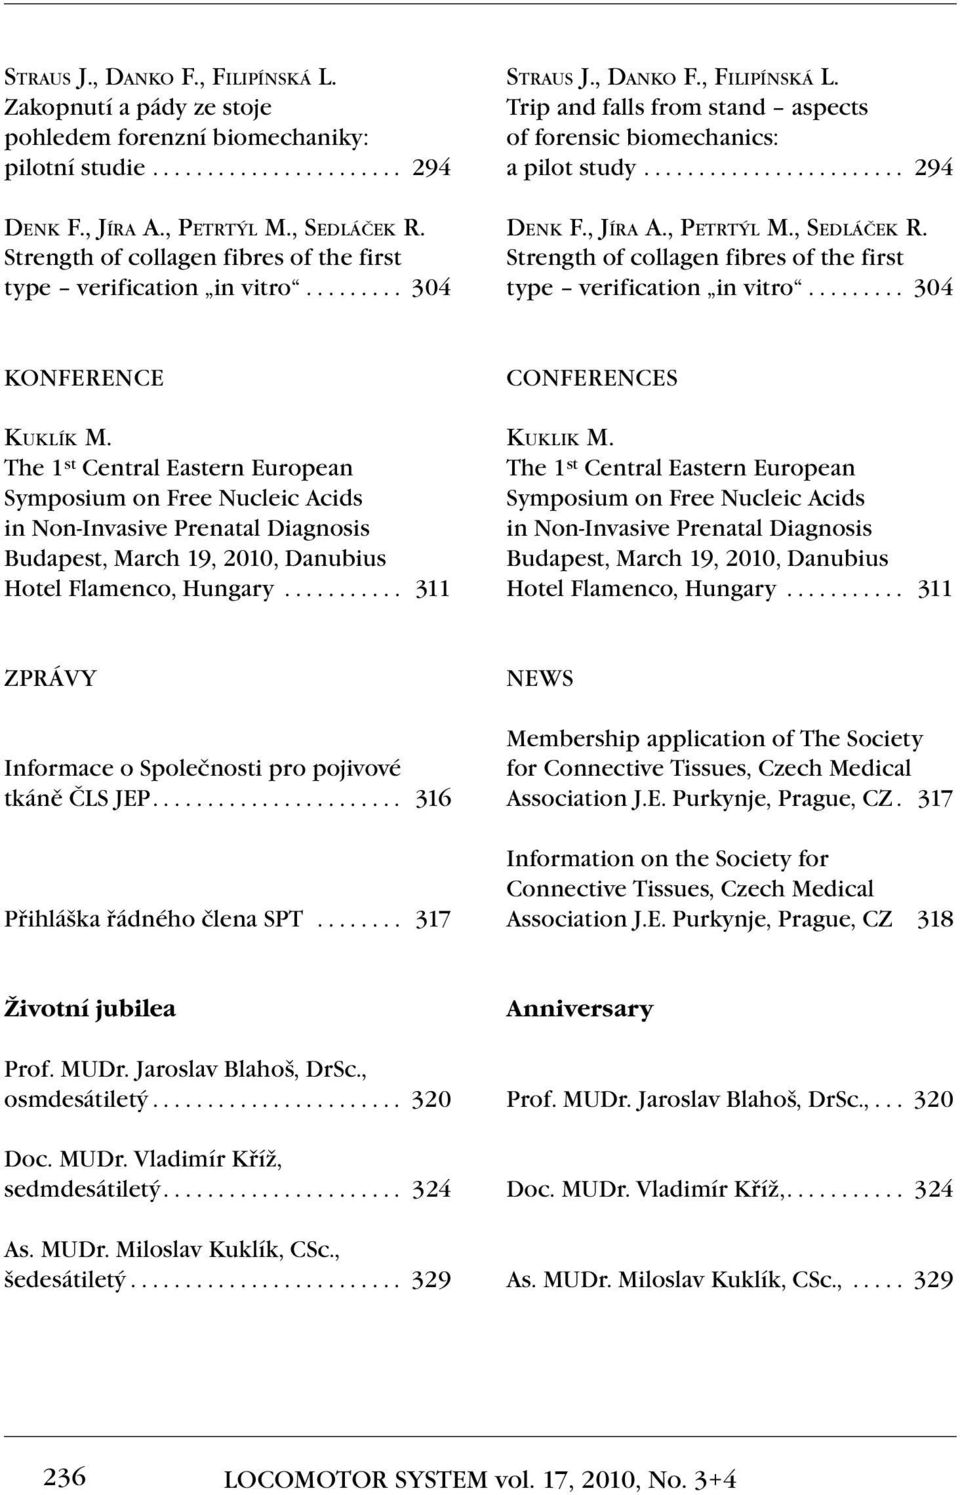 ....................... 294 Denk F., Jíra A., Petrtýl M., Sedláček R. Strength of collagen fibres of the first type verification in vitro........ 304 KONFERENCE Kuklík M.